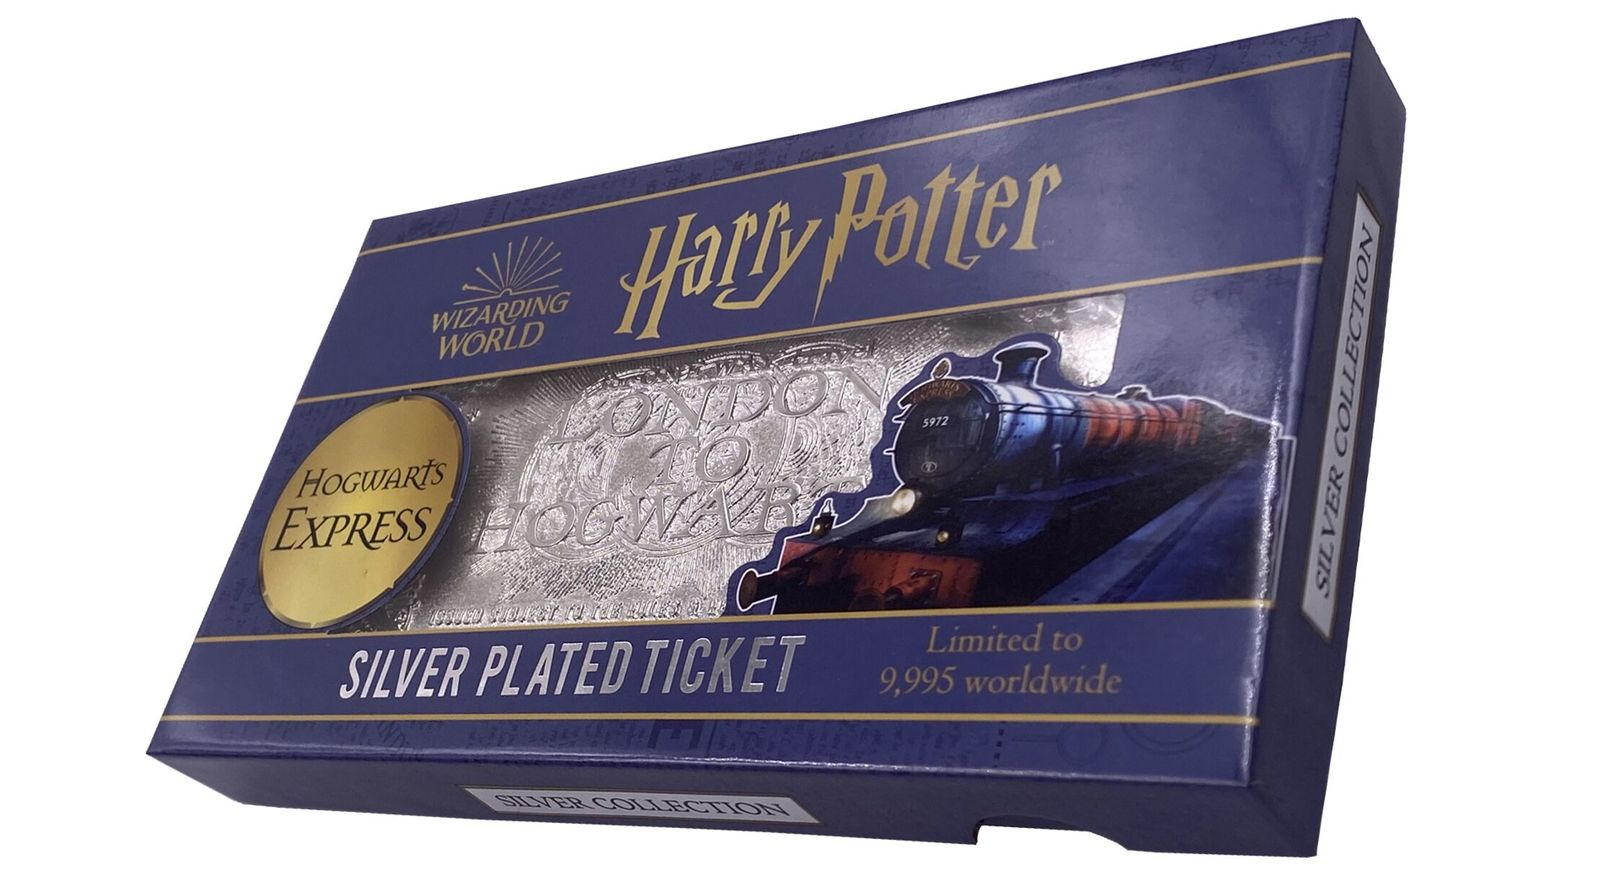 Harry Potter: Hogwarts Express Train Ticket (Silver Plated) - Metal Replica image